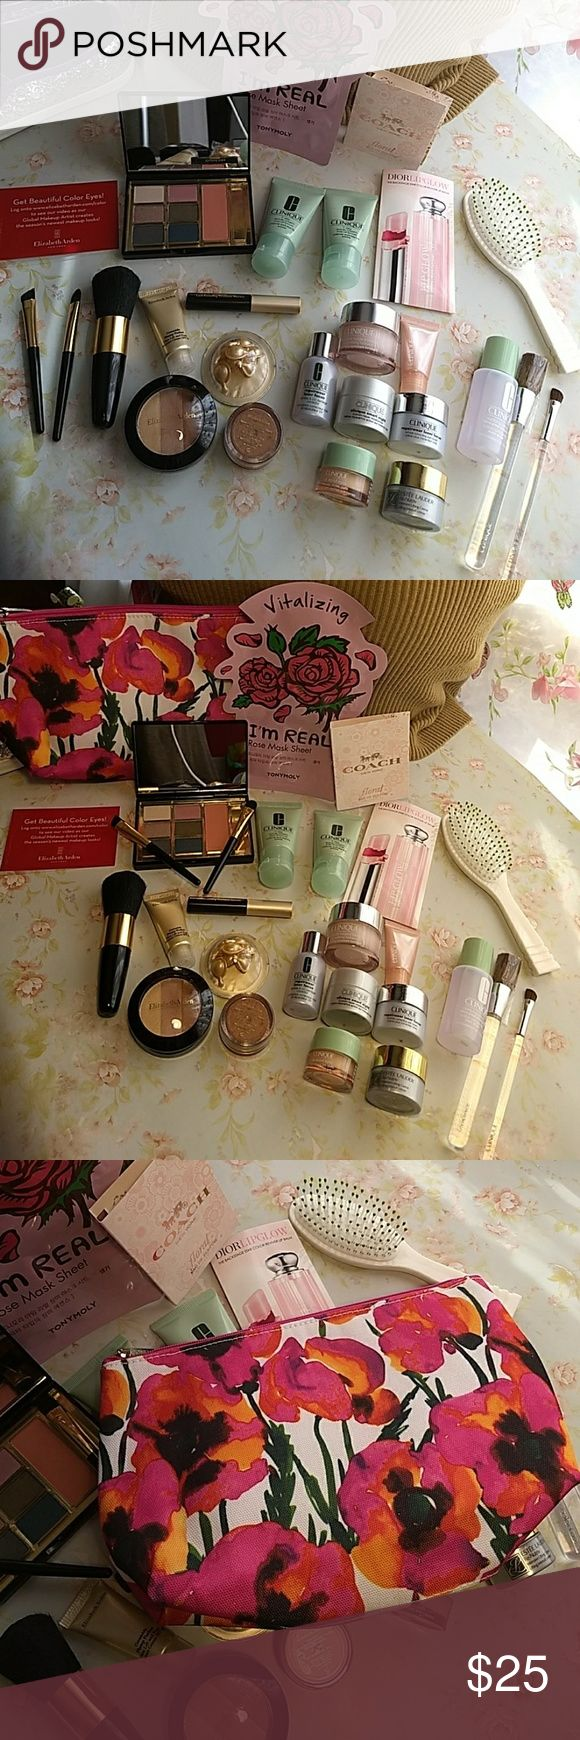 Beauty Bundle Facial Care & Cosmetics Beauty bundle travel kit. Includes products from Dior, Clinique, Elizabeth Arden, Estee Lauder, Coach and more. Eyeshadow, mascara, bronzer, eye treatment, face treatment, hairbrush, bronzer brush, 3 Shadow shaping brushes, perfect for the girl on the go. All new products never touched unopened enclosed in a beautiful poppy print Clinique cosmetic bag.  Surprise gift inside worth $18! Coach, Clinique and more Makeup Brushes & Tools